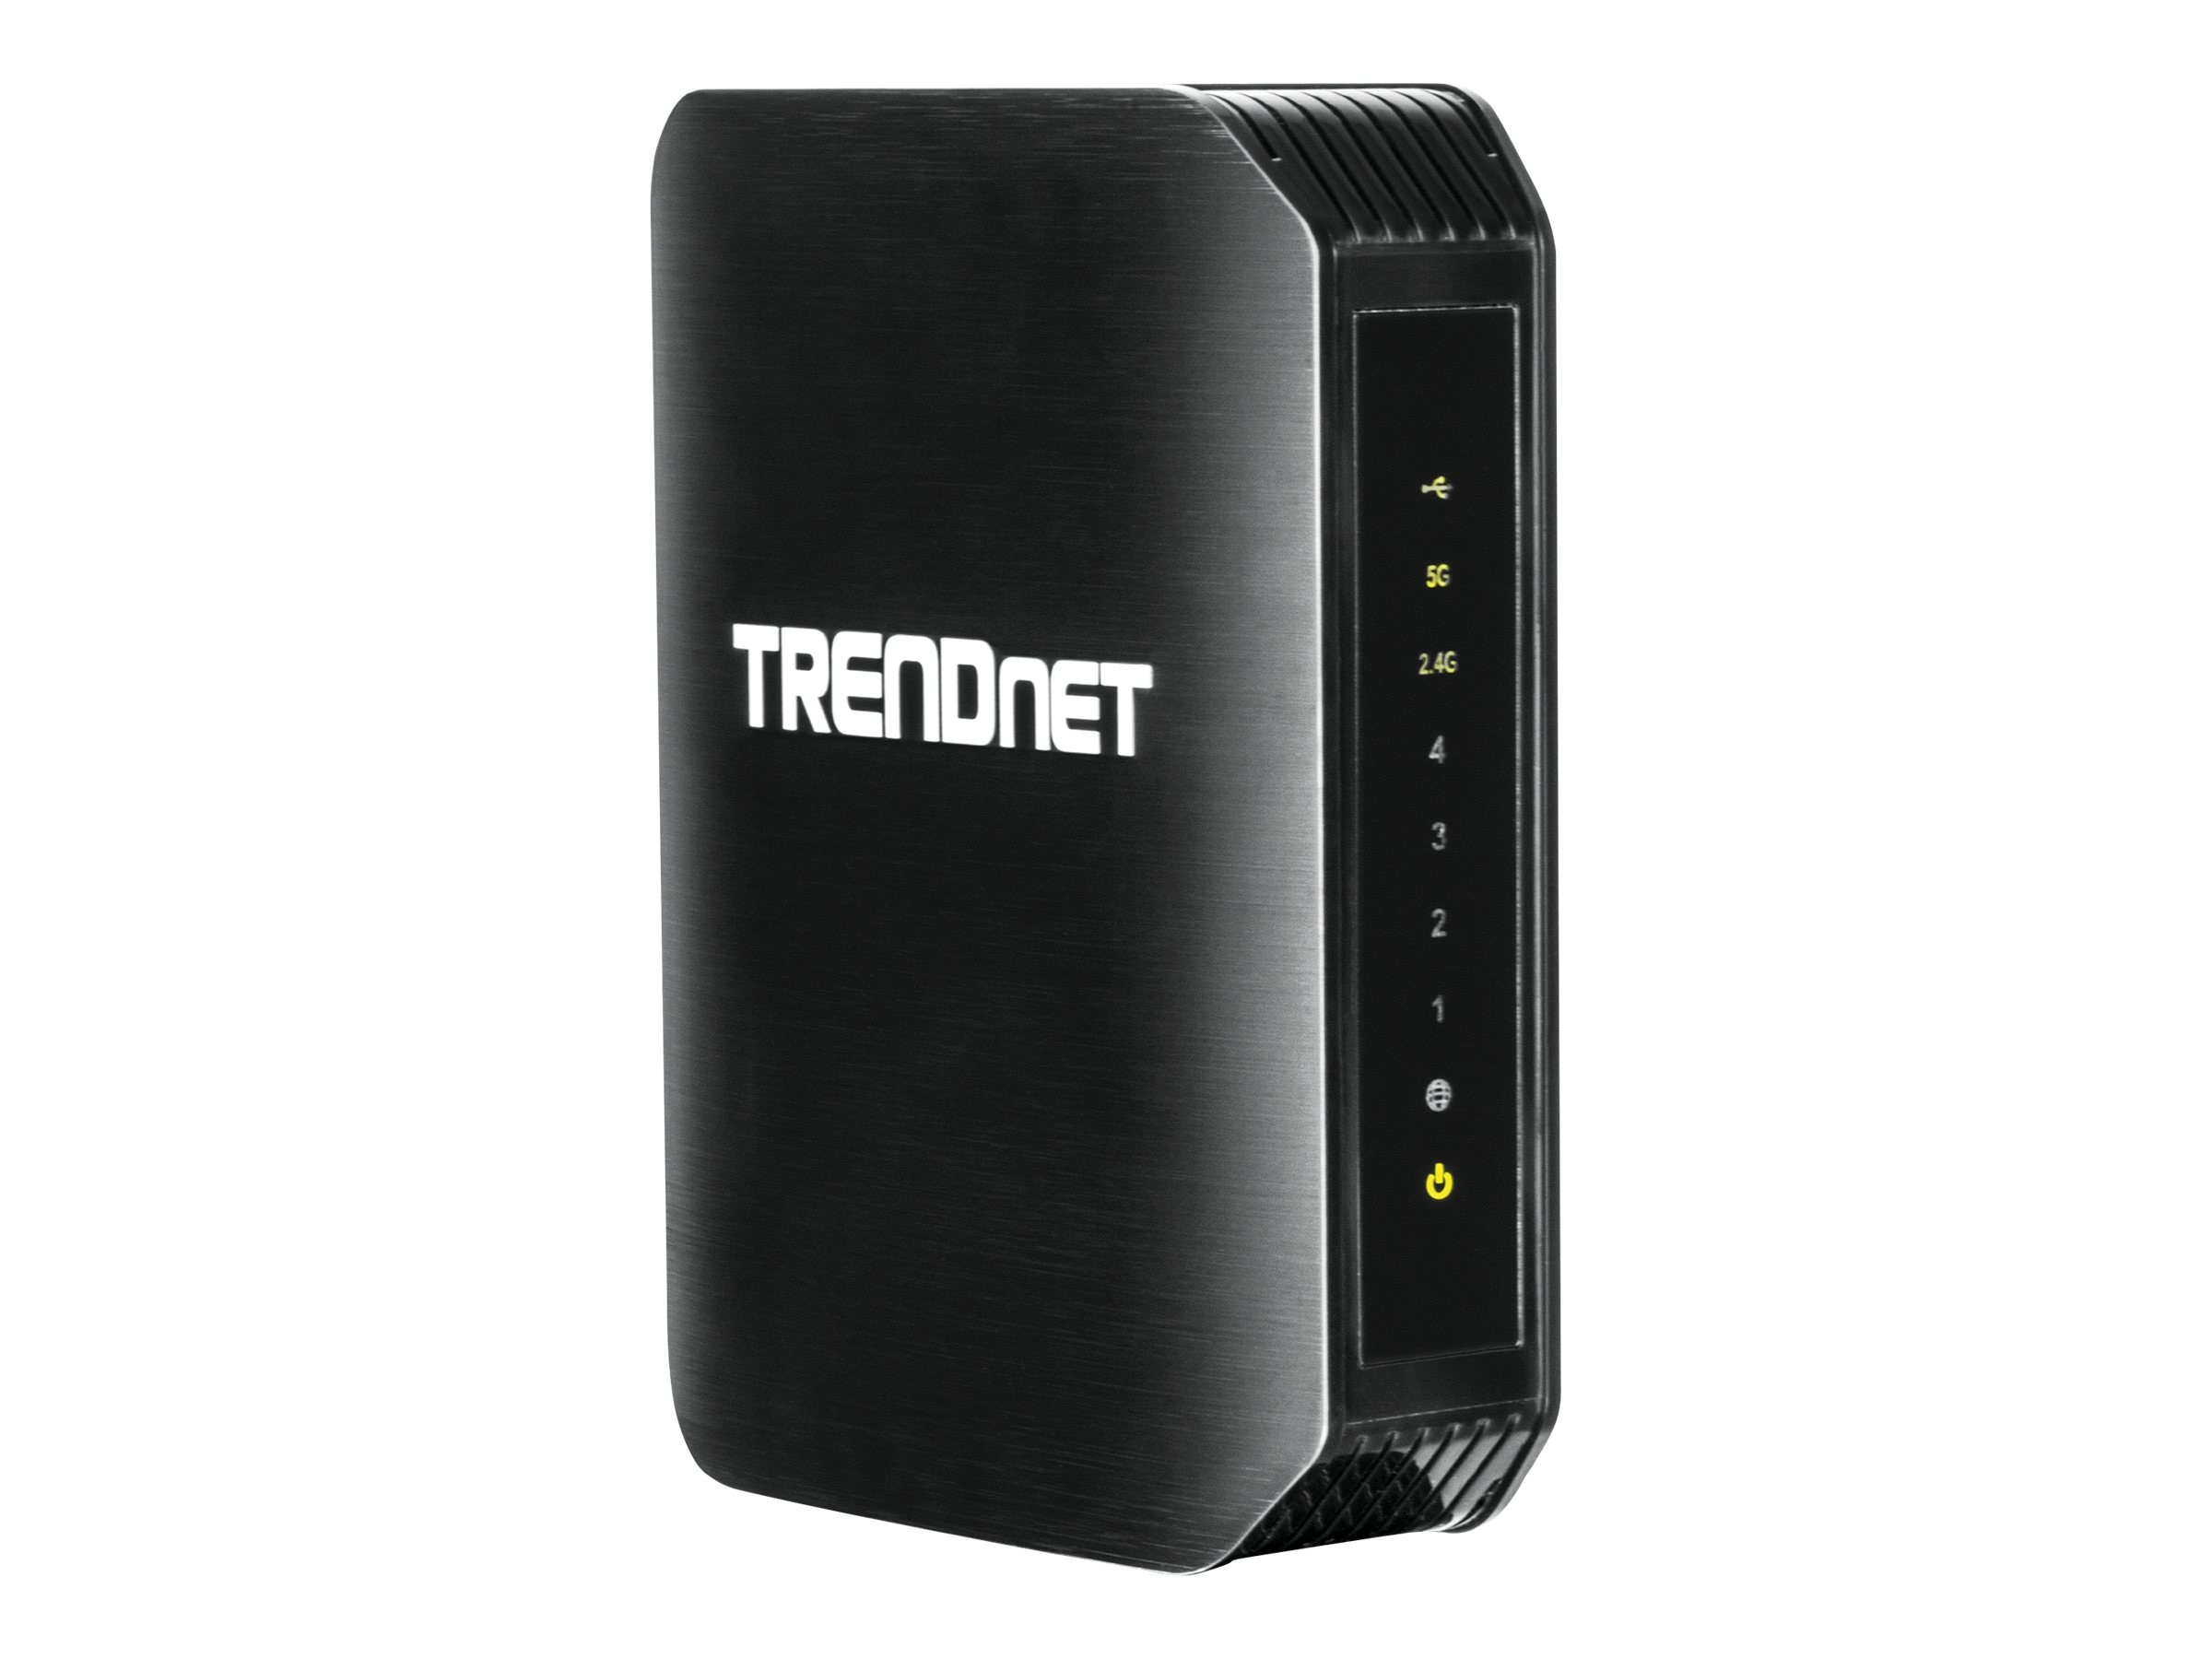 TRENDnet AC1200 Dual Band Wireless Router, TEW-811DRU